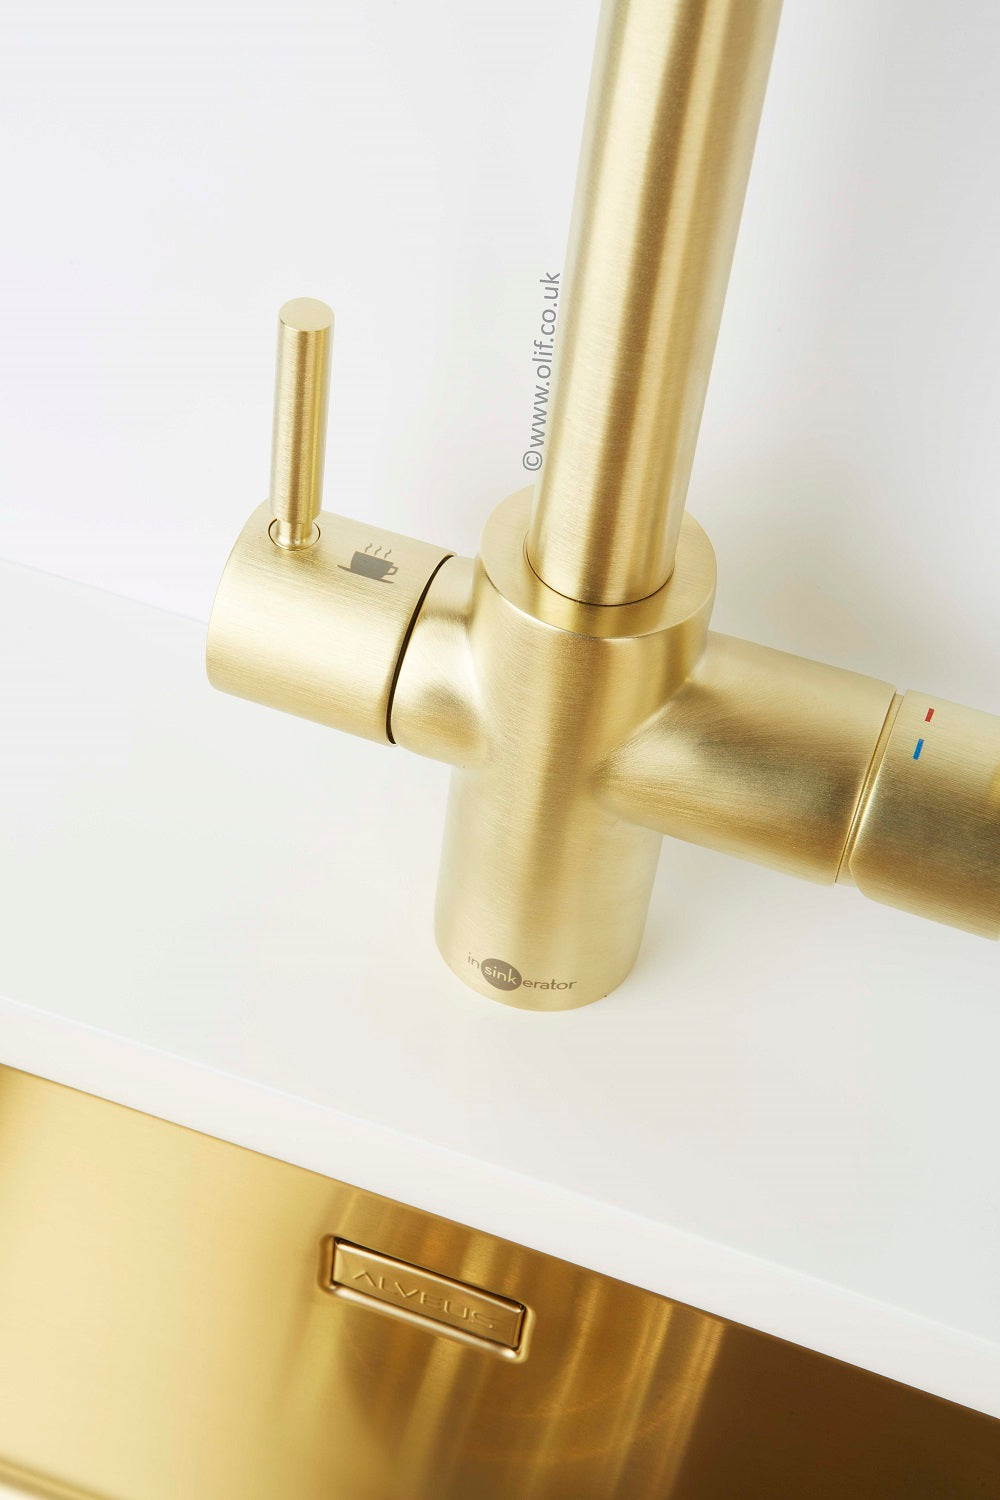 Insinkerator 3n1 hot water tap